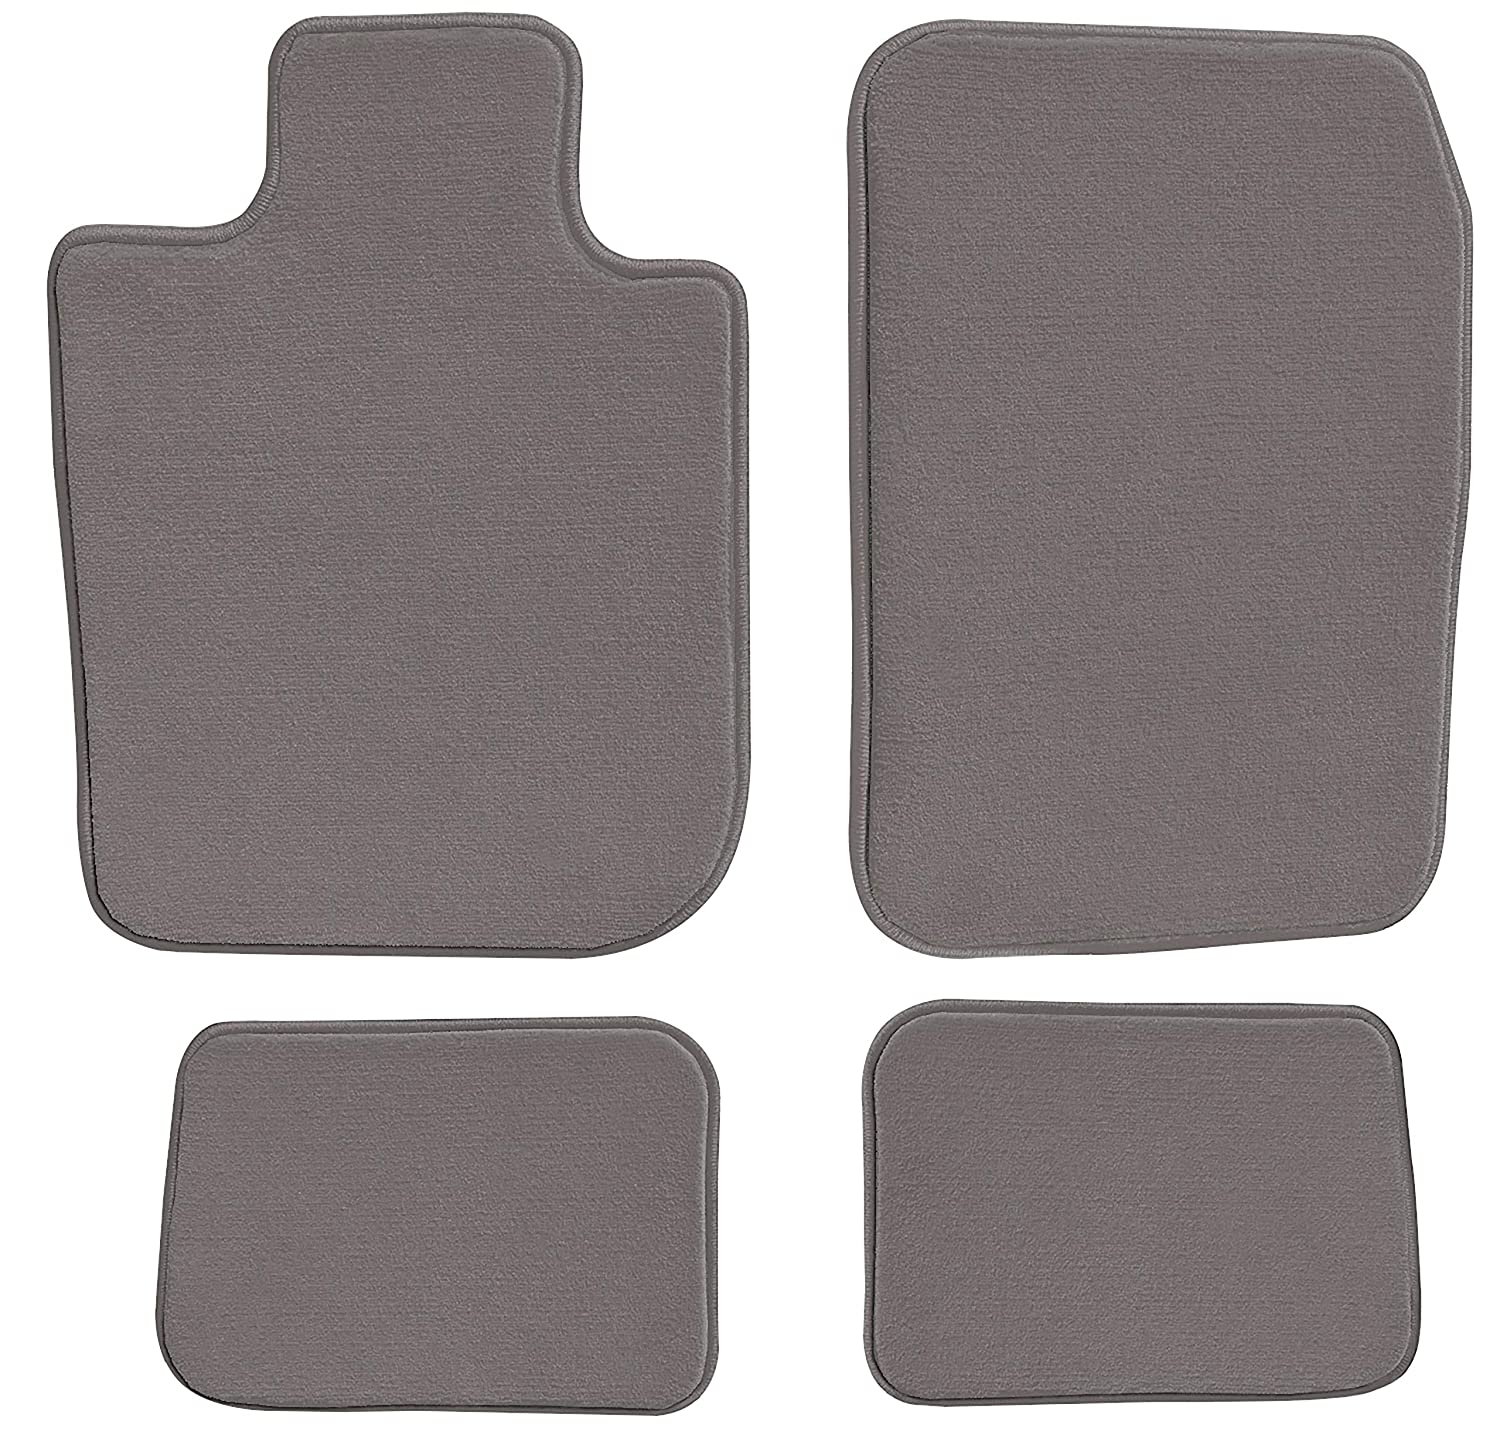 Passenger /& Rear Floor 2018 Audi A4 Grey Loop Driver GGBAILEY D60259-S1A-GY-LP Custom Fit Car Mats for 2017